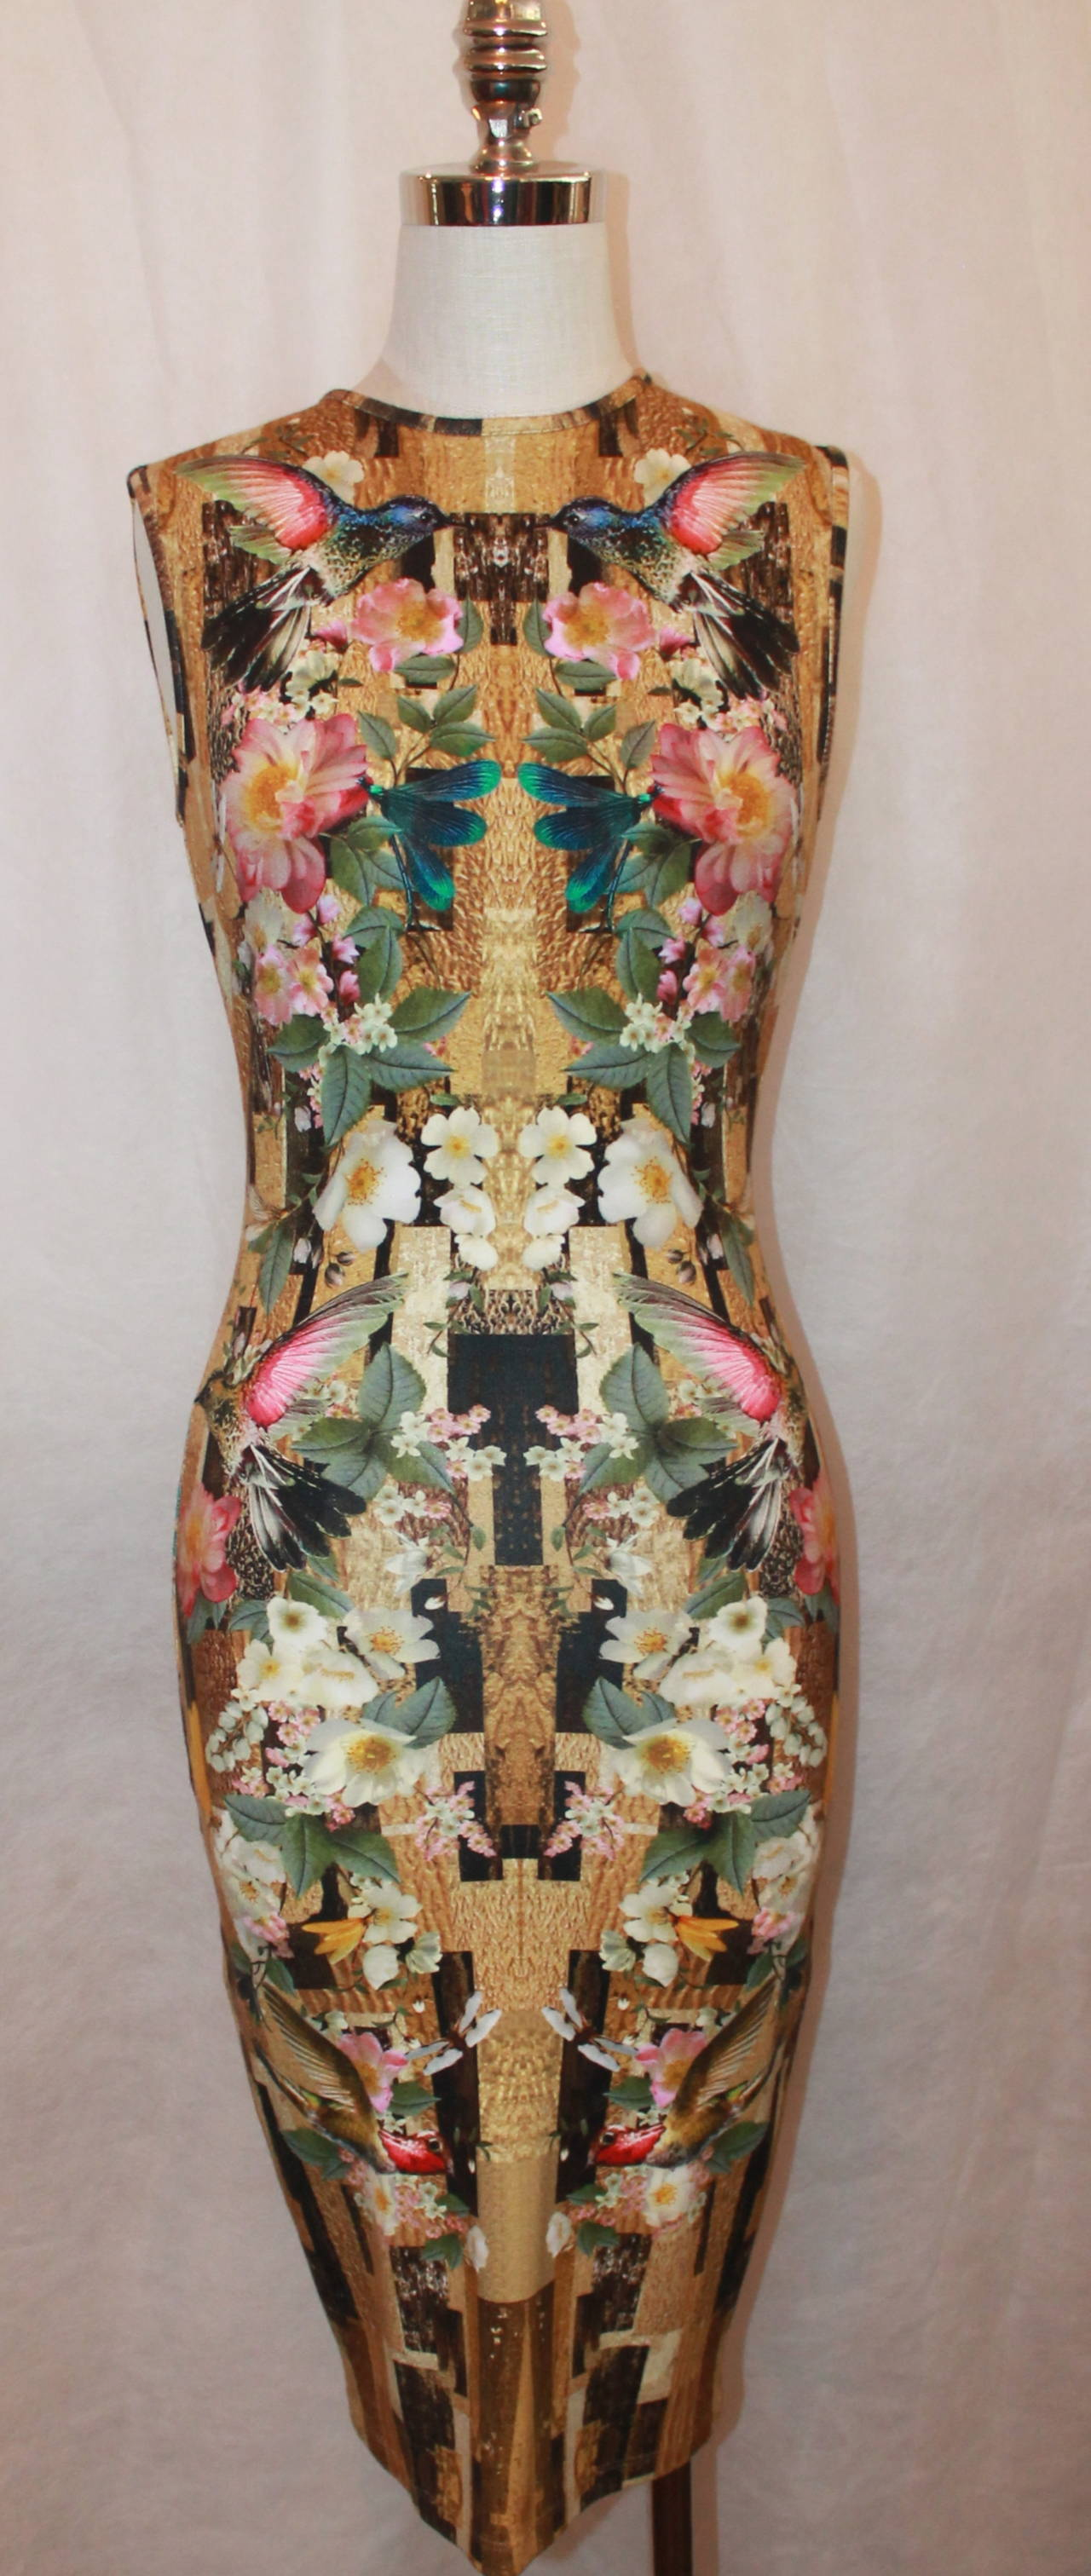 Alexander McQueen 2013 Resort Hummingbird & Floral Print Fitted Dress. This dress is in excellent condition and is a tea length. It has golden tones in the background and is 94% rayon and 6% elastin. 